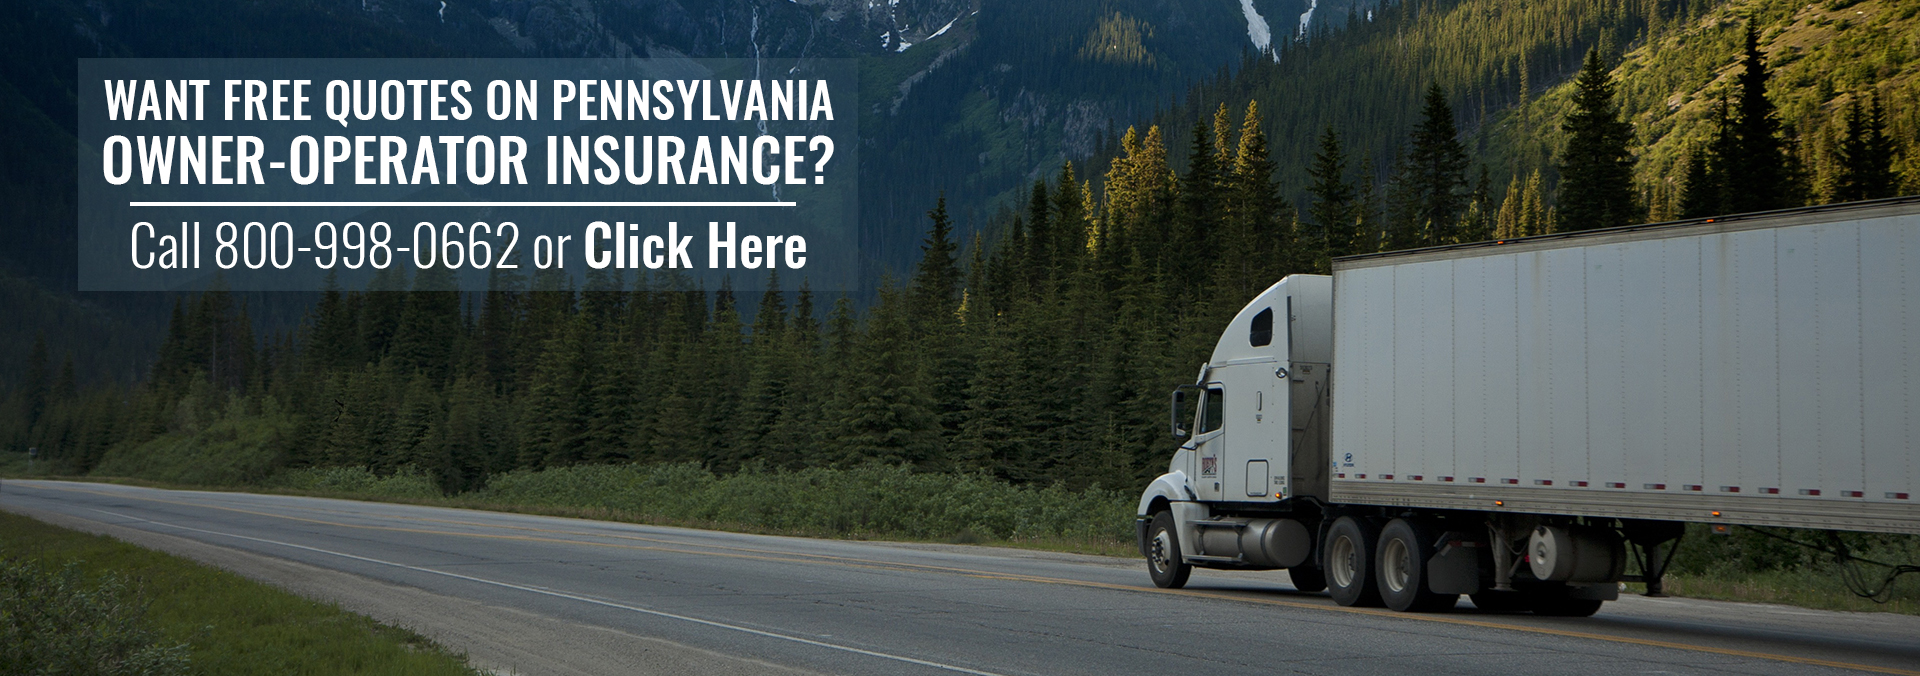 Pennsylvania Business Auto Insurance